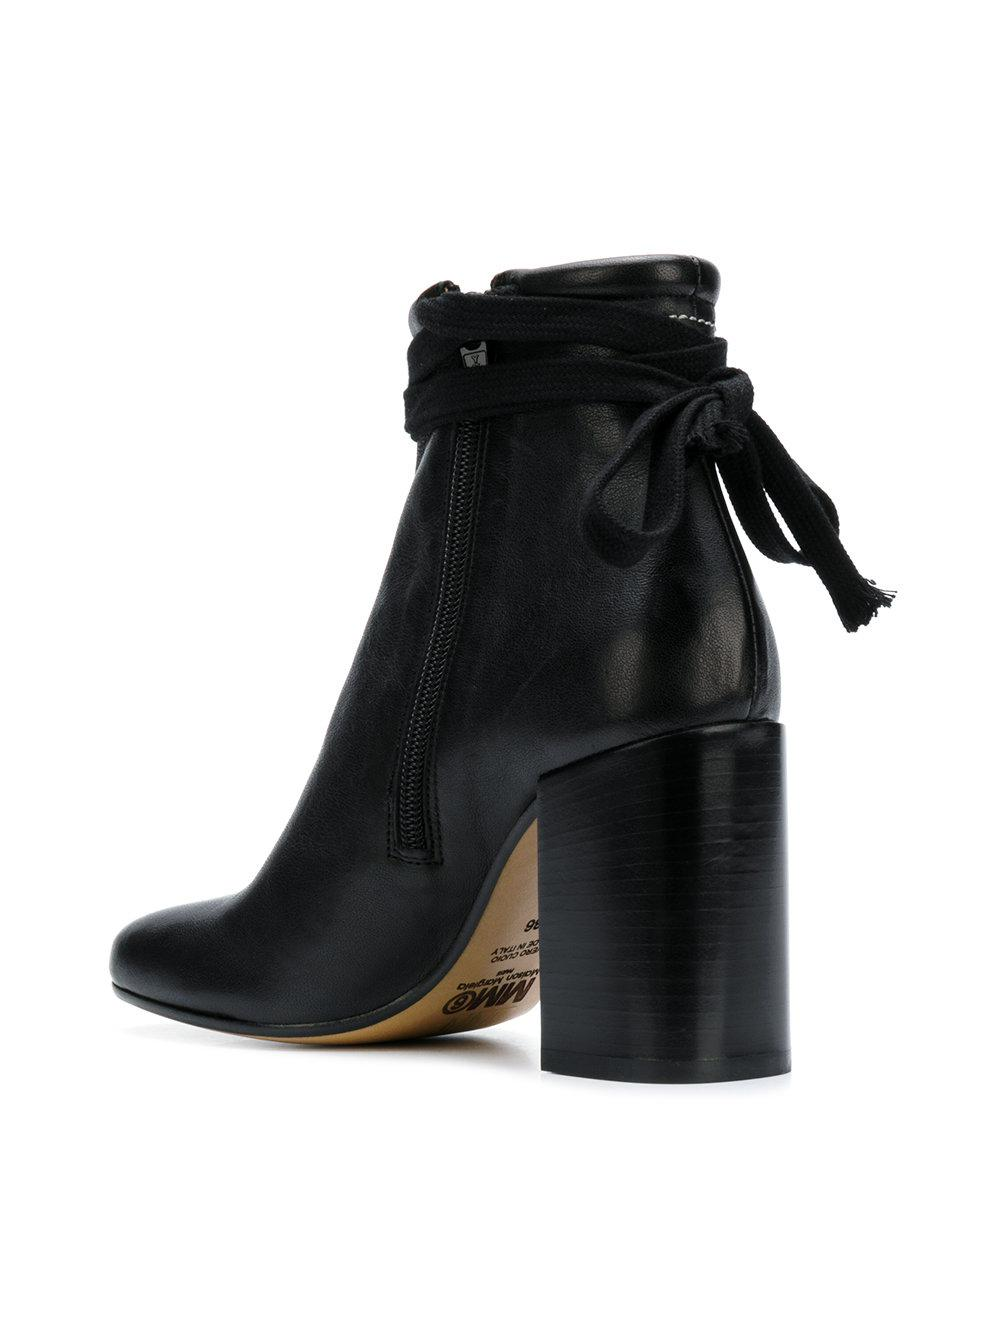 7539307b2ba2 Gallery. Previously sold at  Farfetch · Women s Frye Pia Women s Wedge  Ankle Booties ...